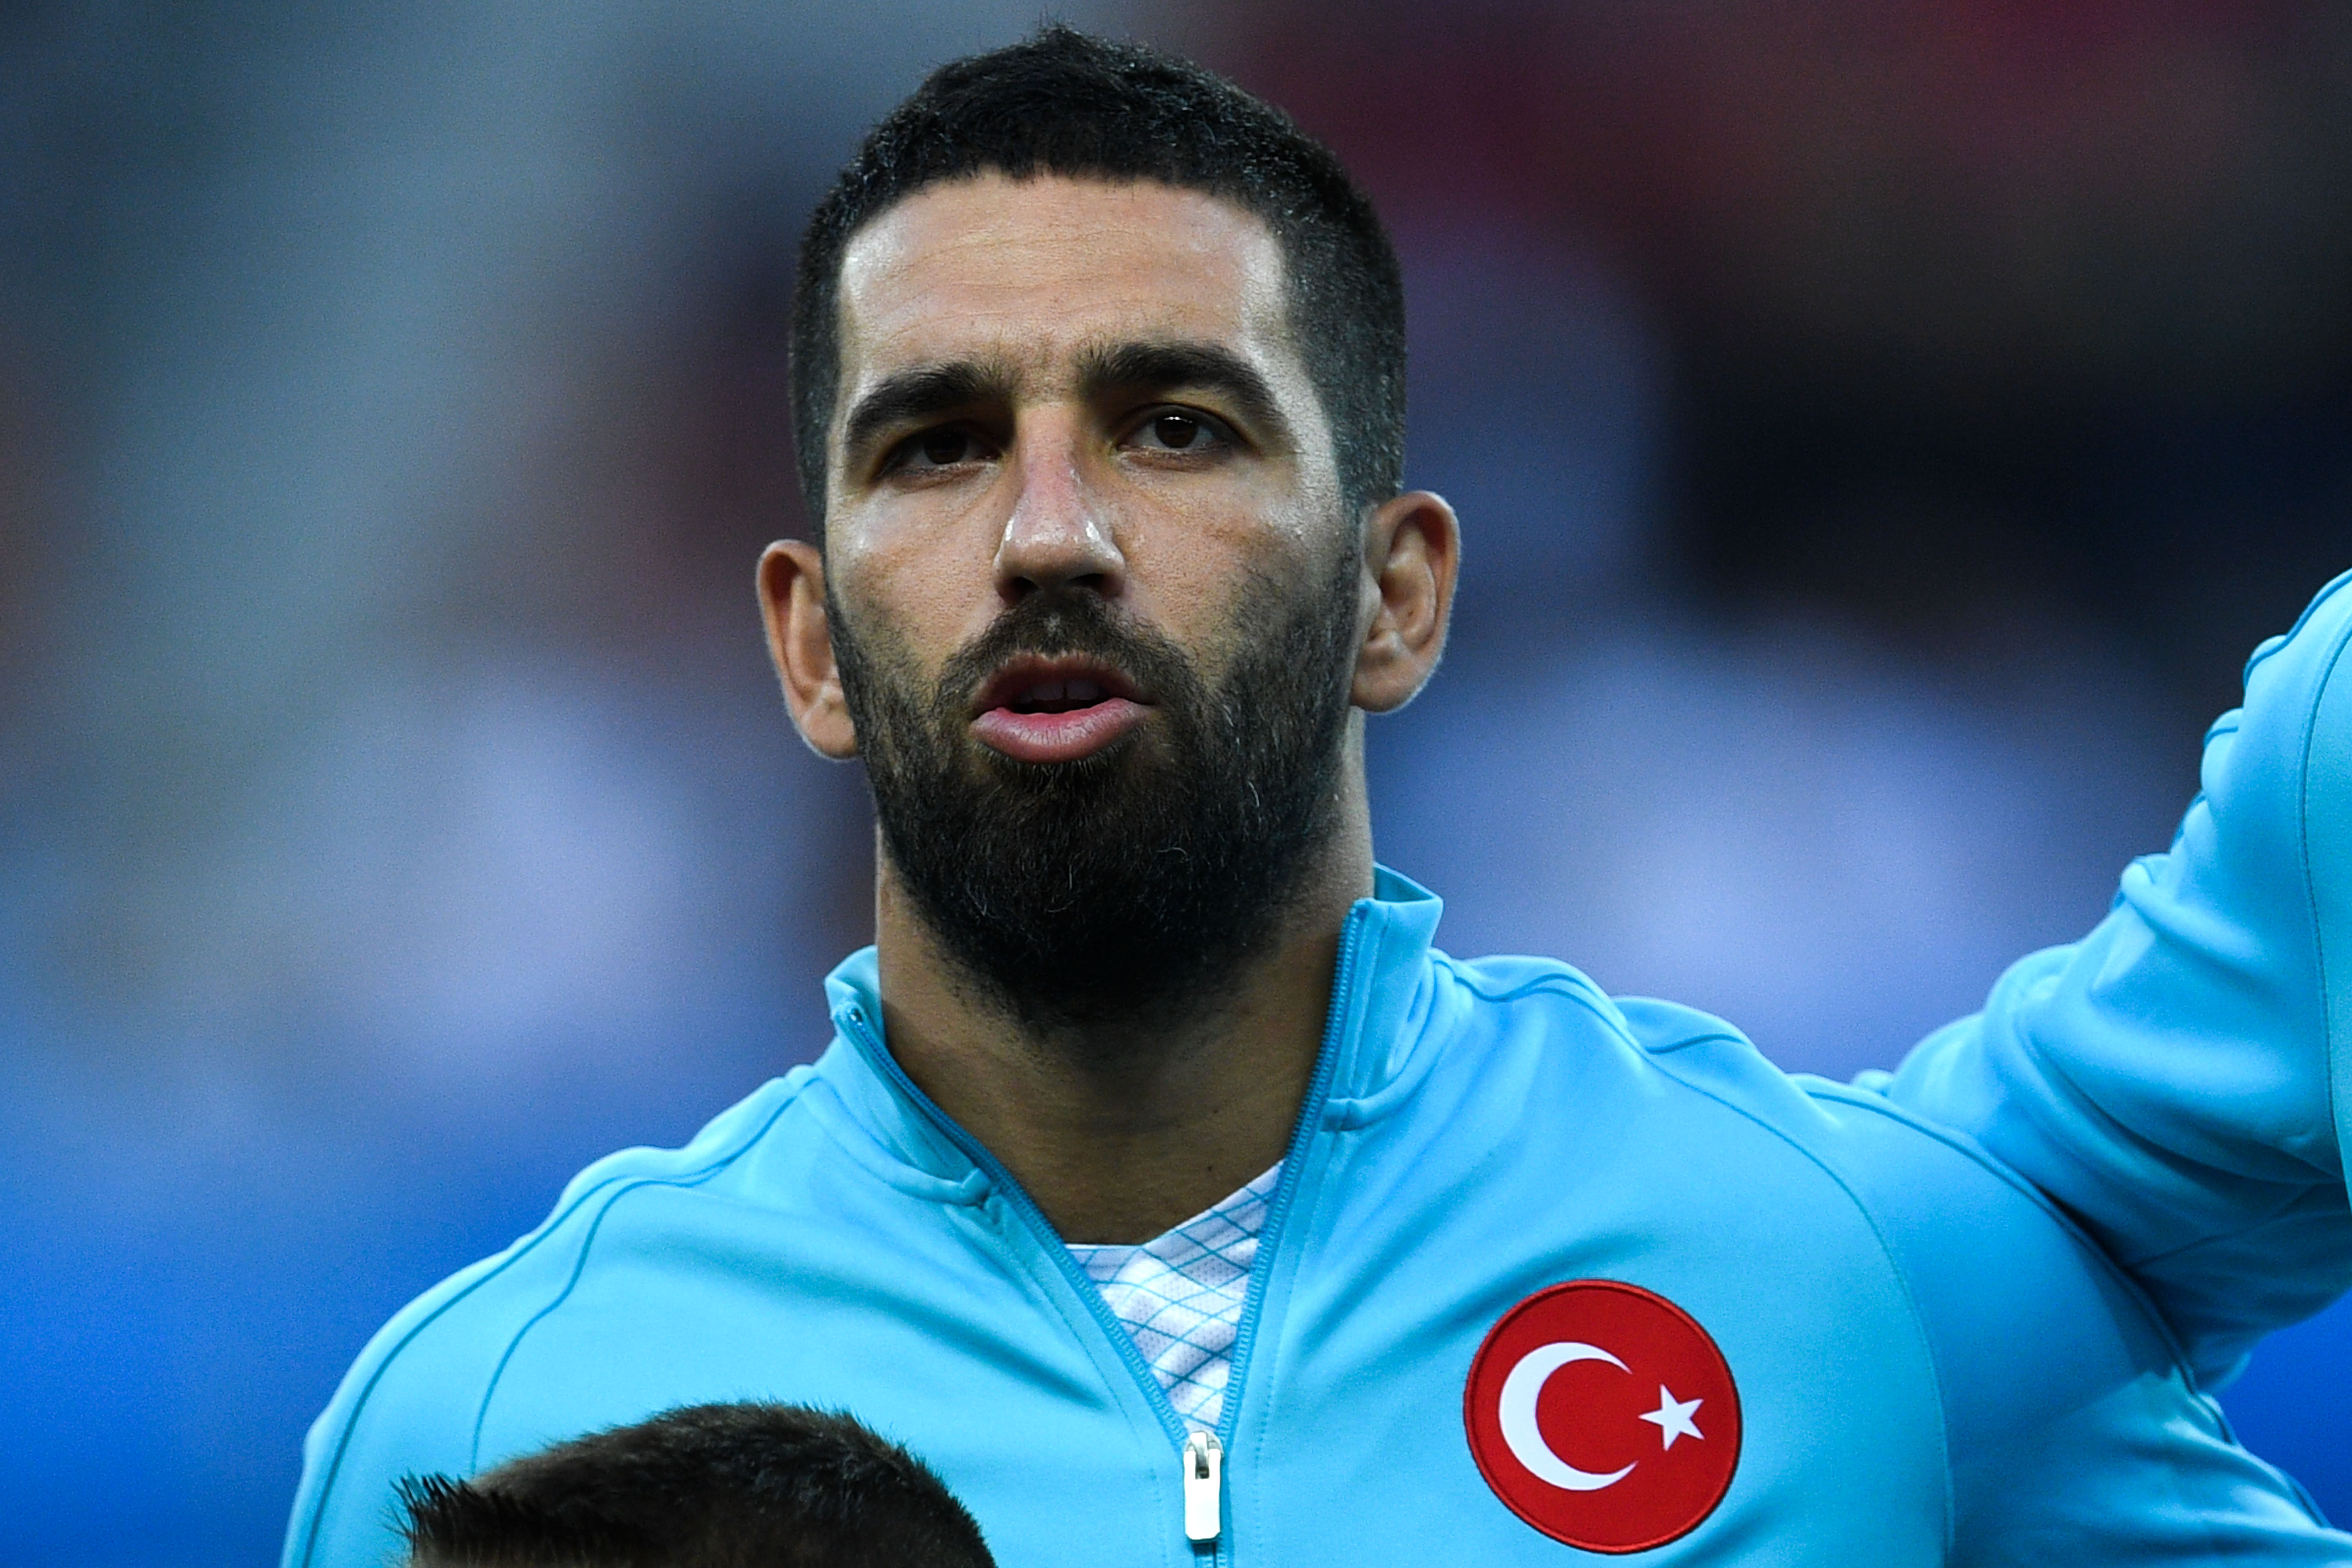 Turan has struggled to fit in at Barcelona